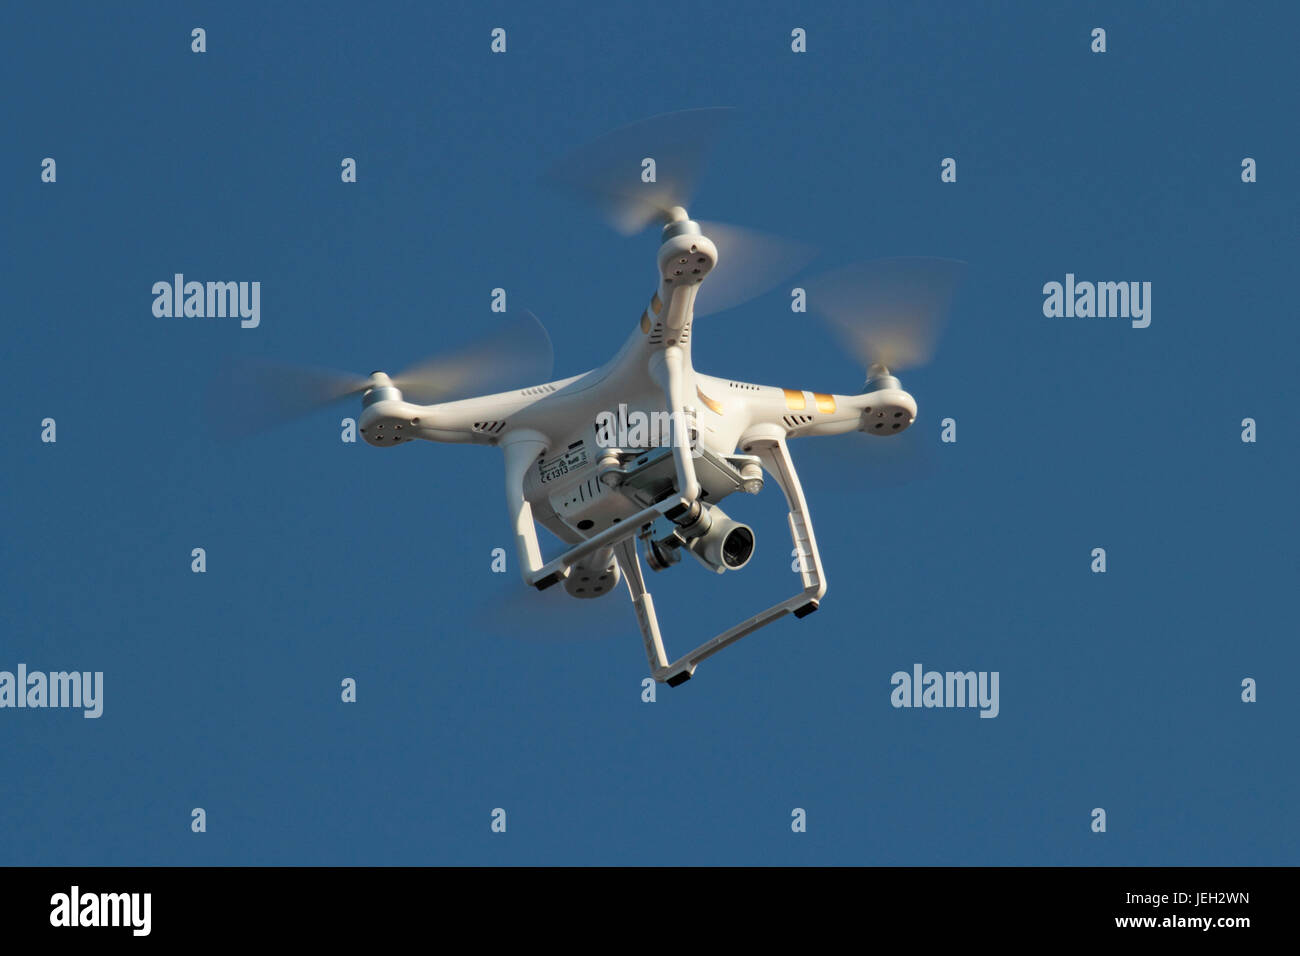 DJI Phantom quadcopter 3 drone photographique, planant avec l'appareil photo vers le bas Photo Stock